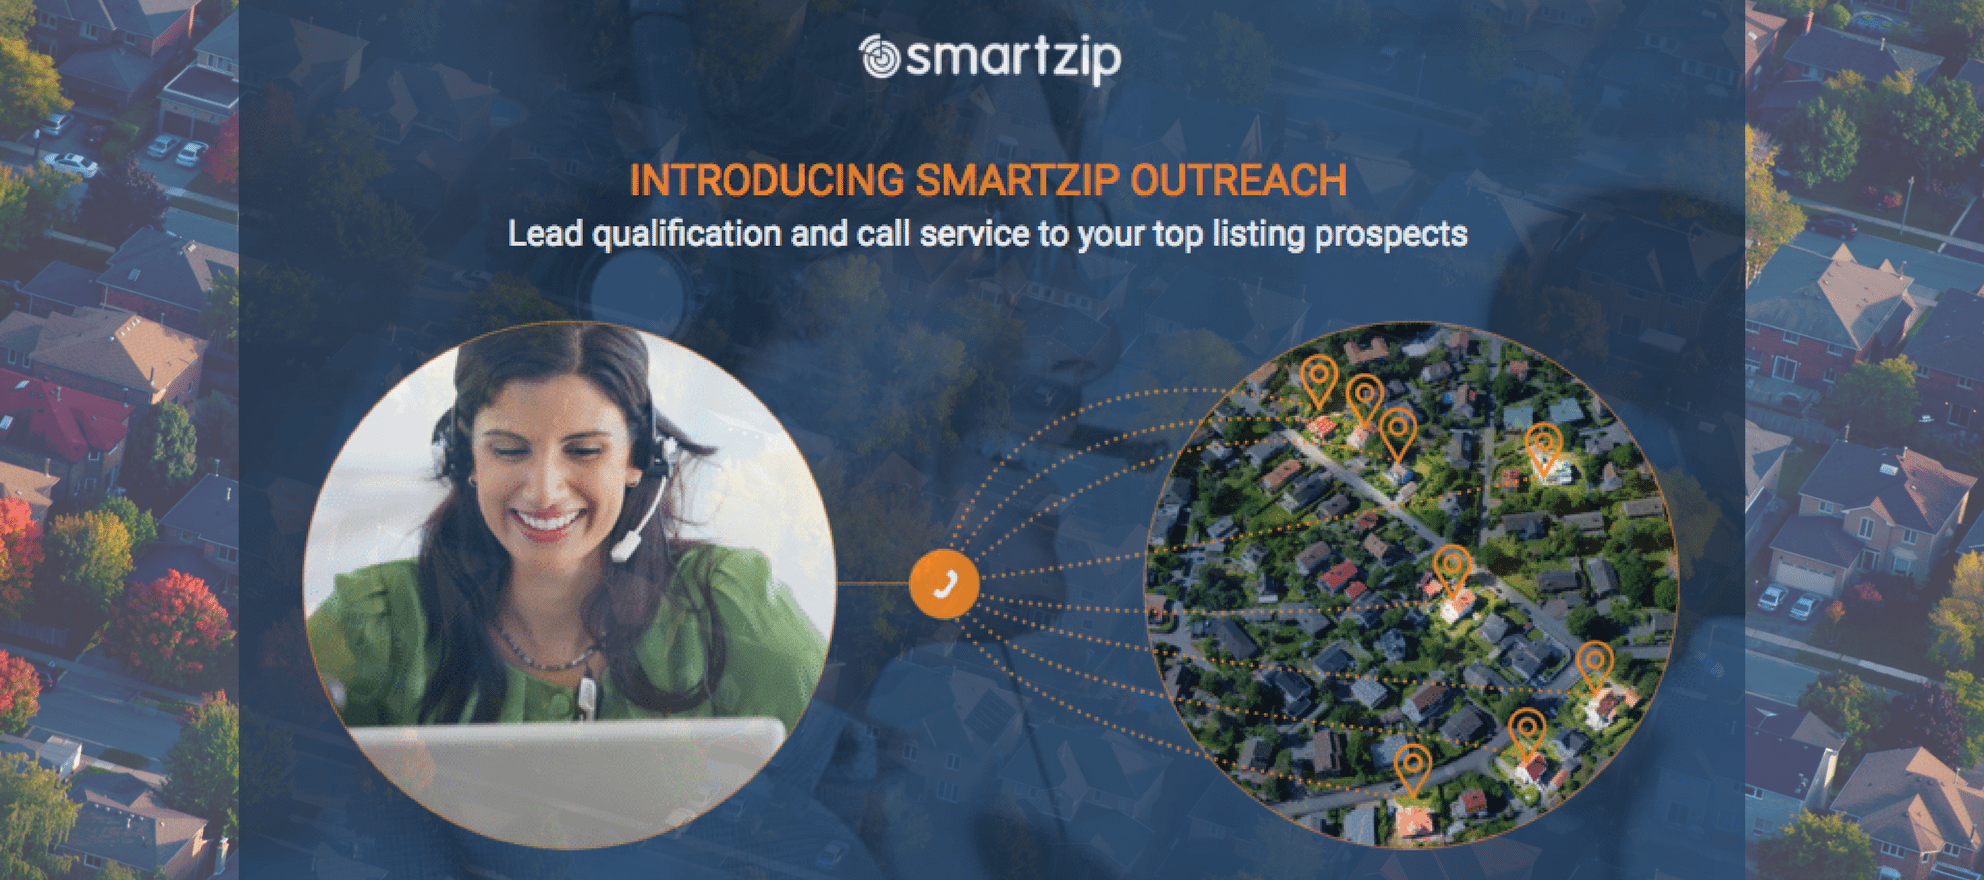 smartzip lead qualification and concierge service